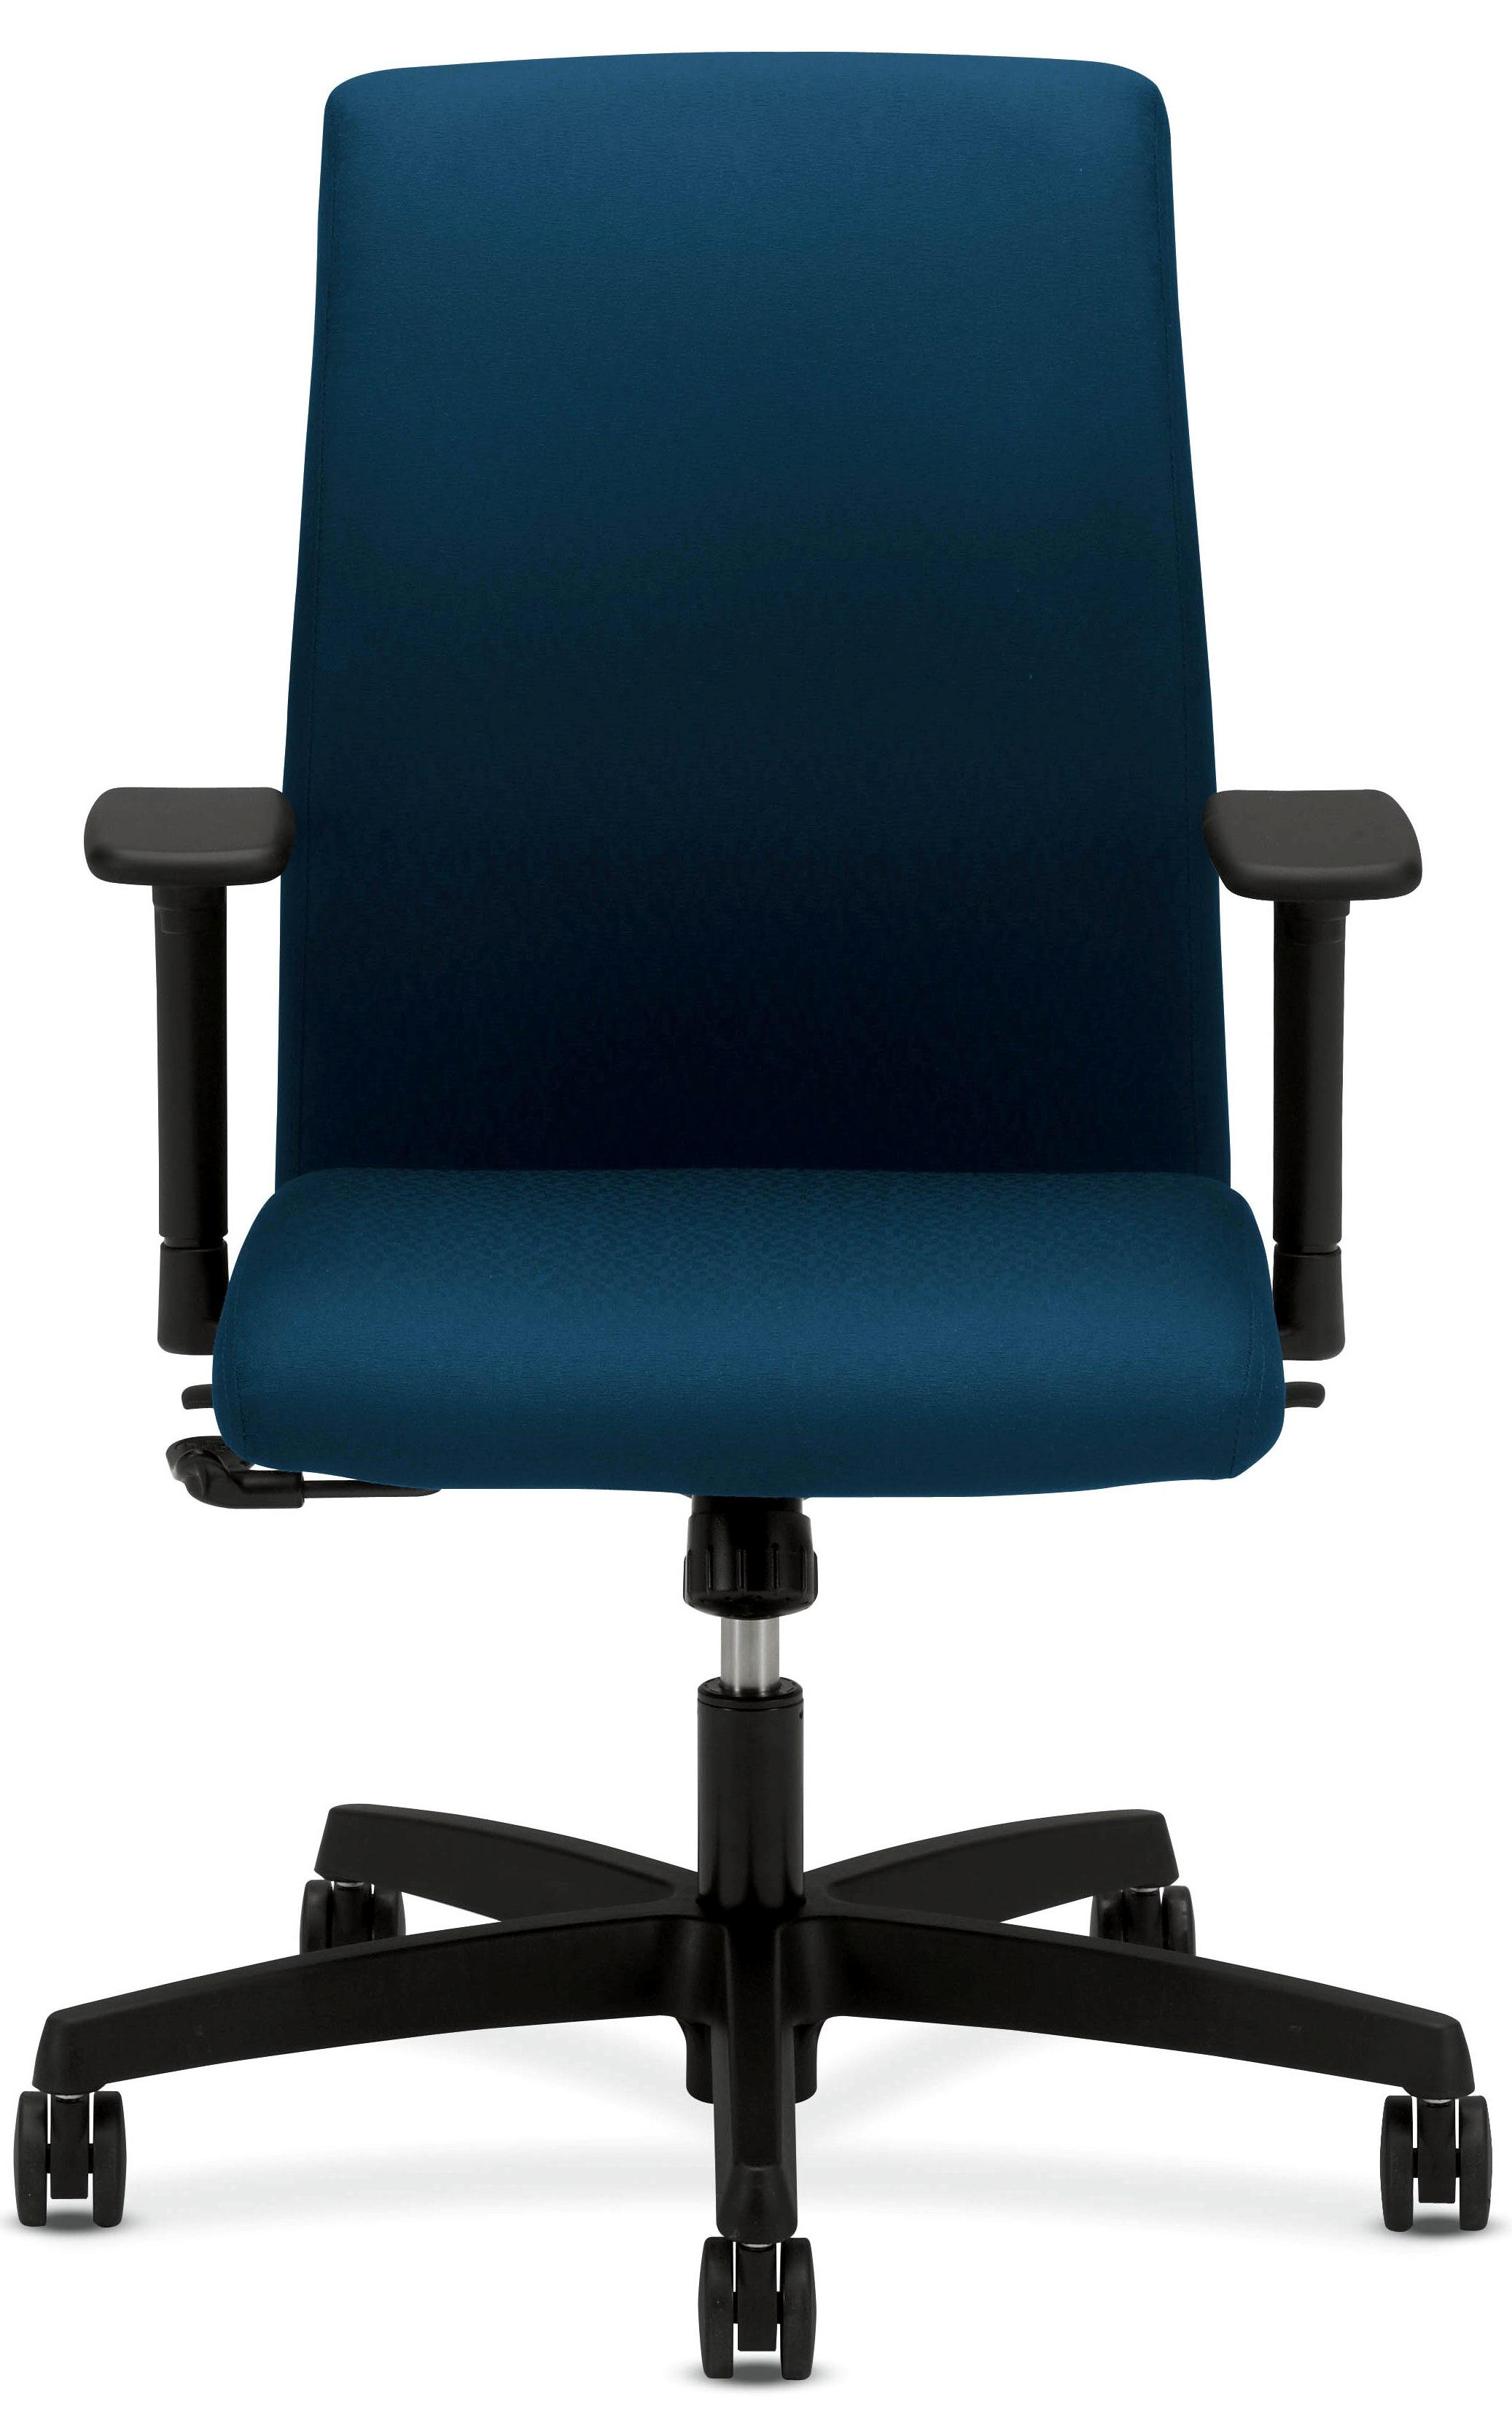 Work Chair Hon Office Furniture Ignition Office Chair Desk Chair